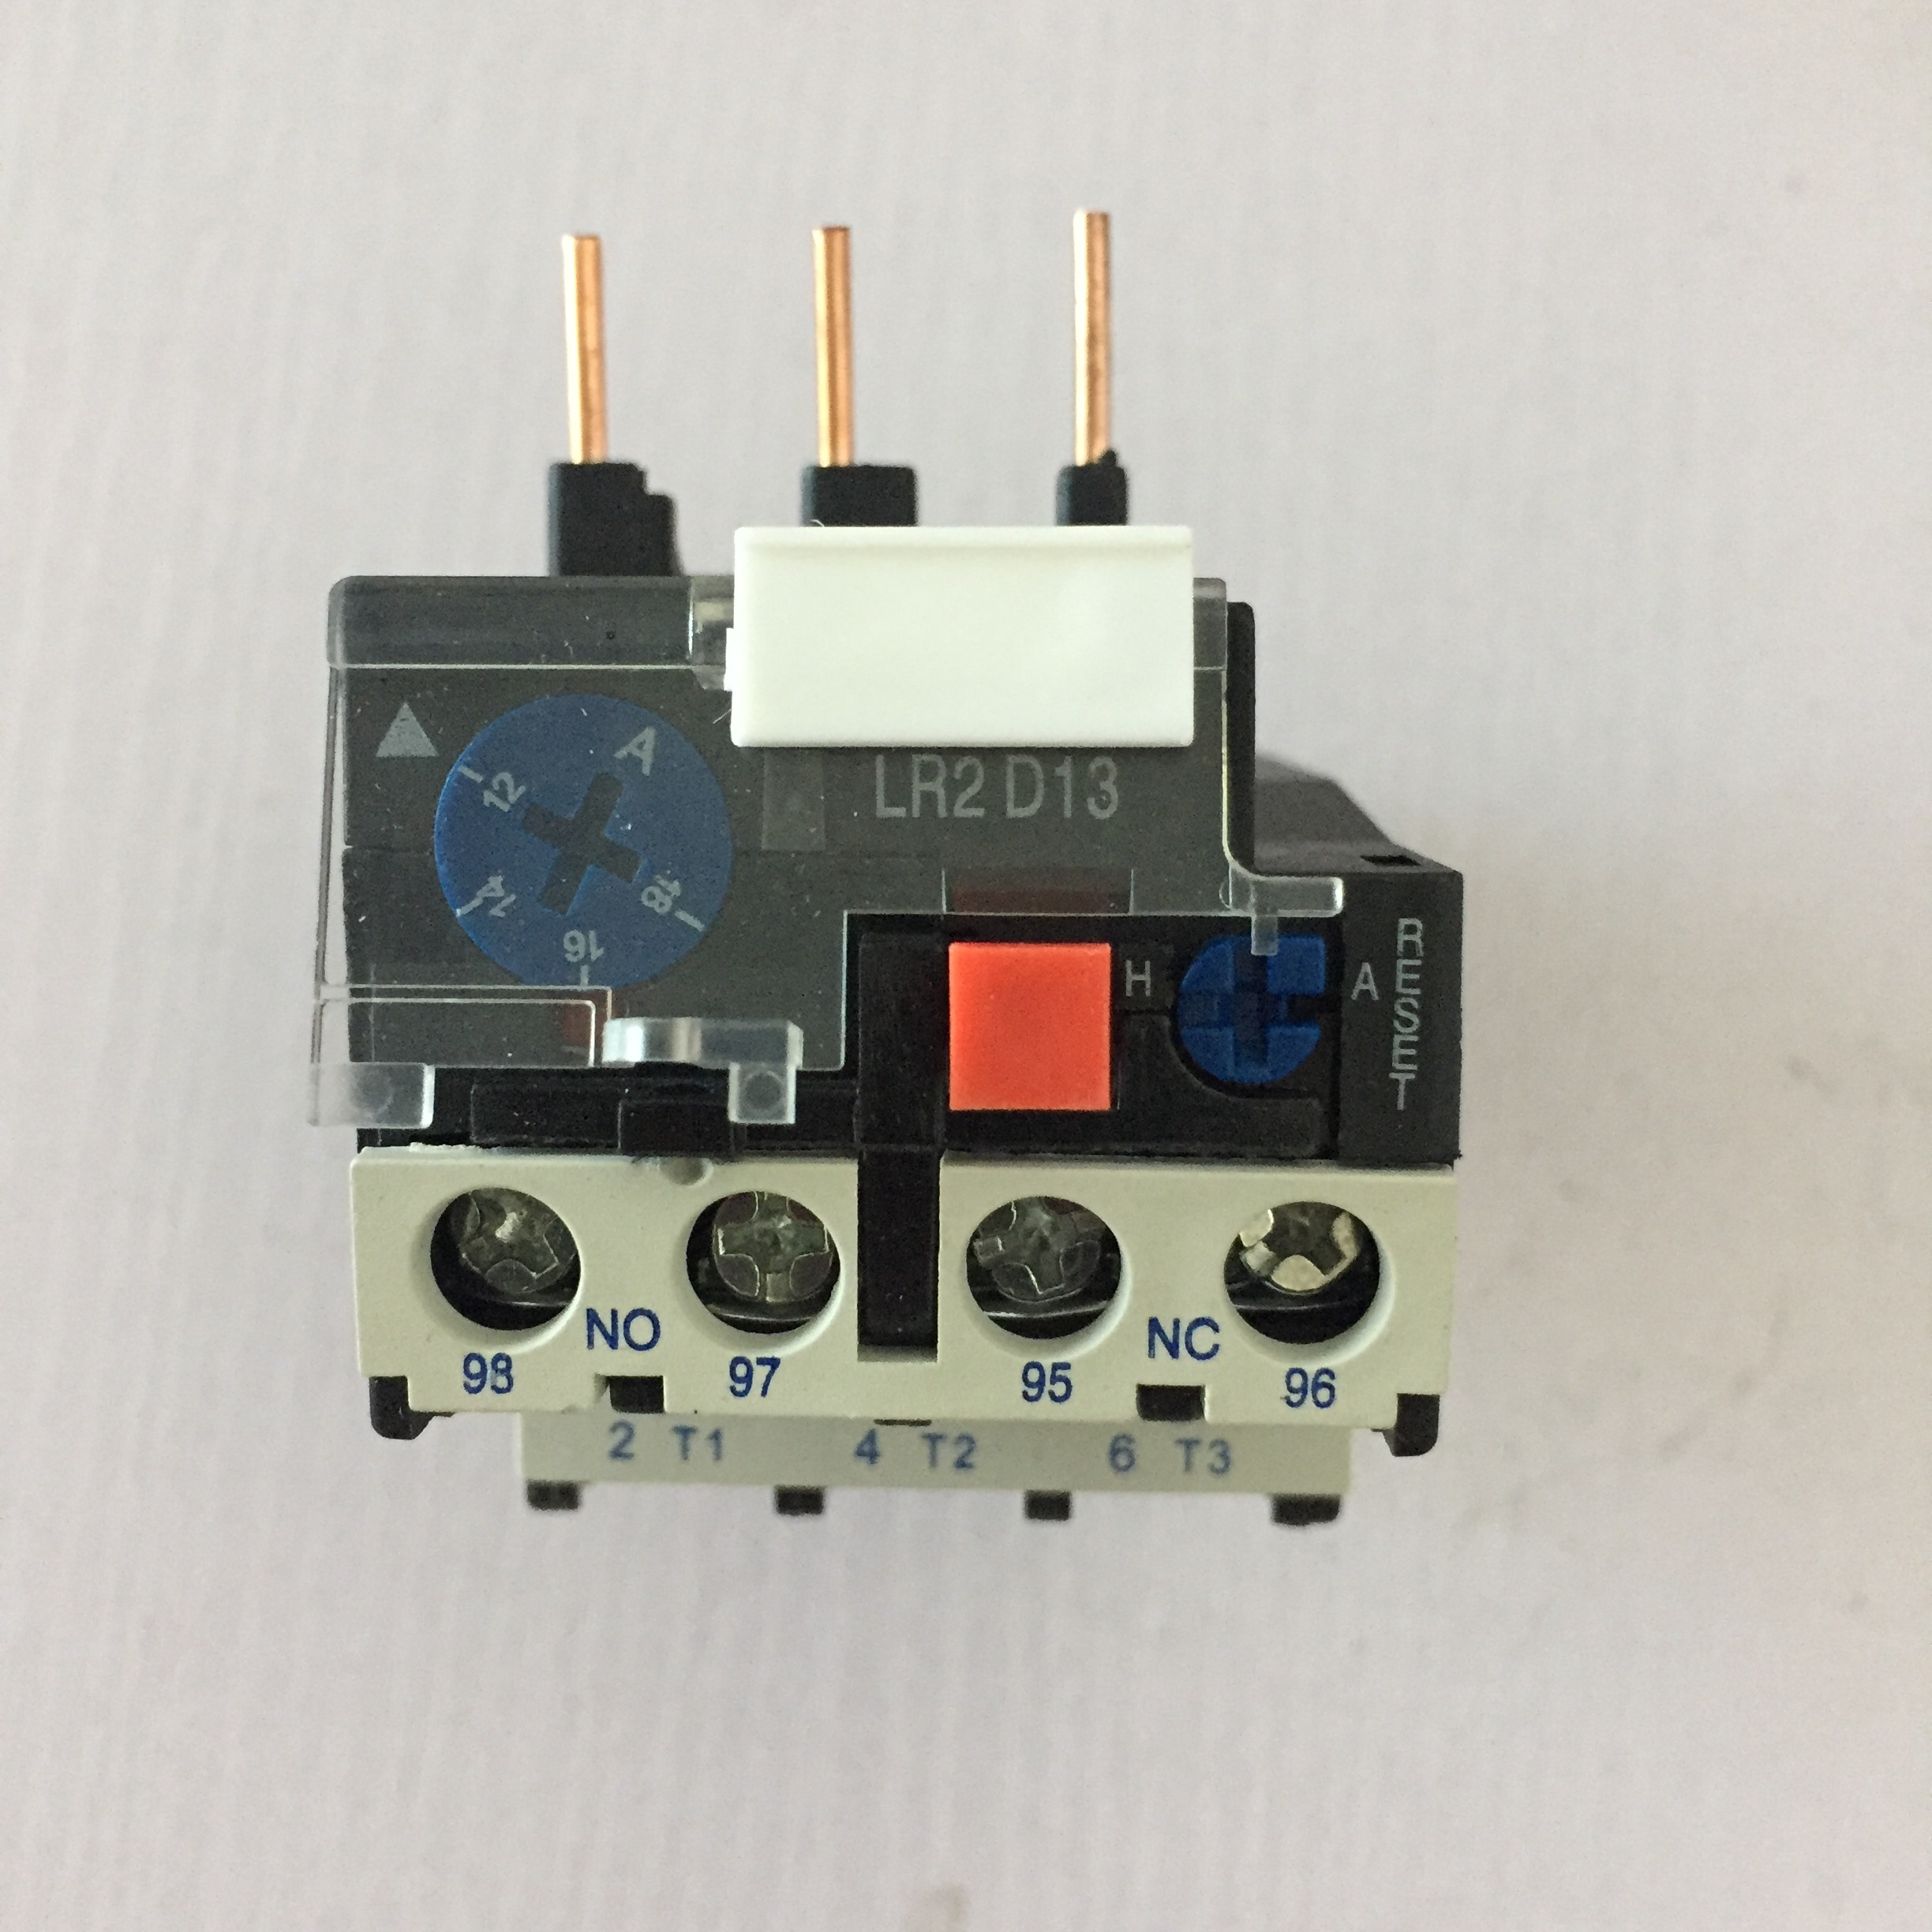 Thermal overload relay LR2-D13 LR2D13 0.16A-25A Complete current specifications